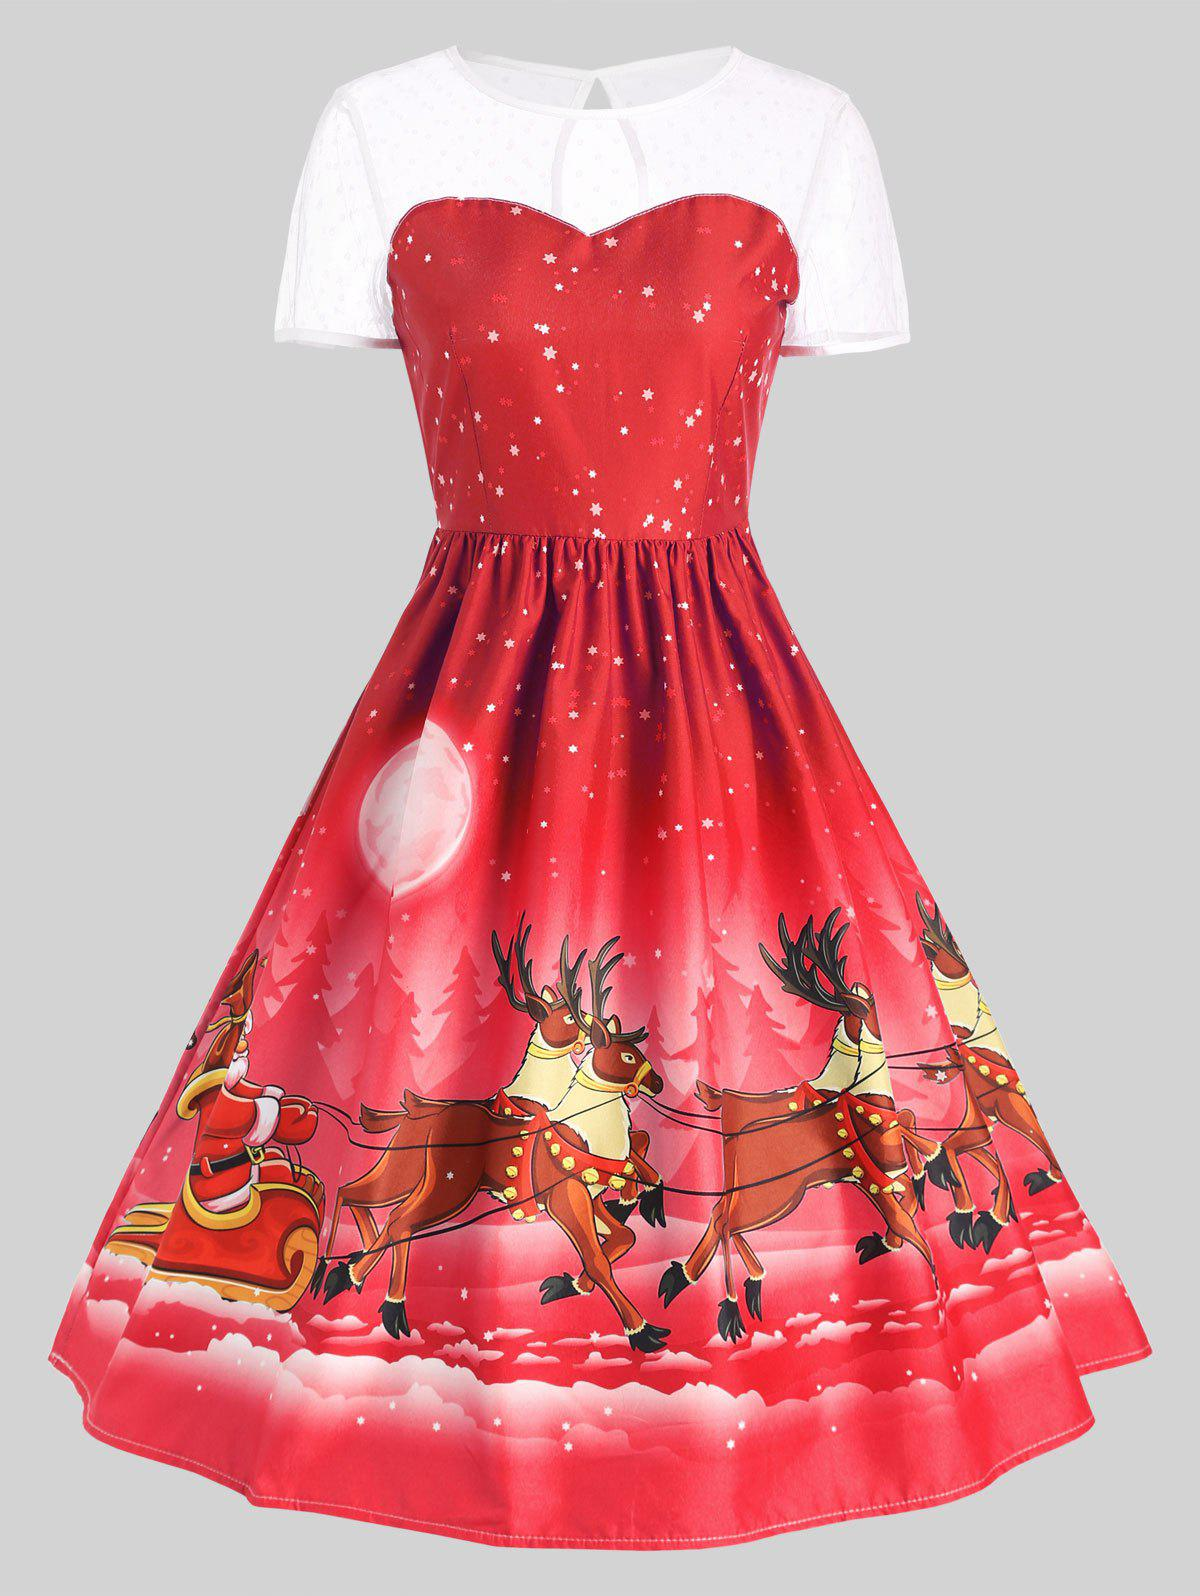 Mesh Panel Sleigh Santa Claus Christmas Party DressWOMEN<br><br>Size: XL; Color: RED; Style: Cute; Material: Polyester; Silhouette: Ball Gown; Dresses Length: Mid-Calf; Neckline: Round Collar; Sleeve Length: Short Sleeves; Embellishment: Vintage; Pattern Type: Animal,Character,Print; With Belt: No; Season: Fall,Winter; Weight: 0.2400kg; Package Contents: 1 x Dress;